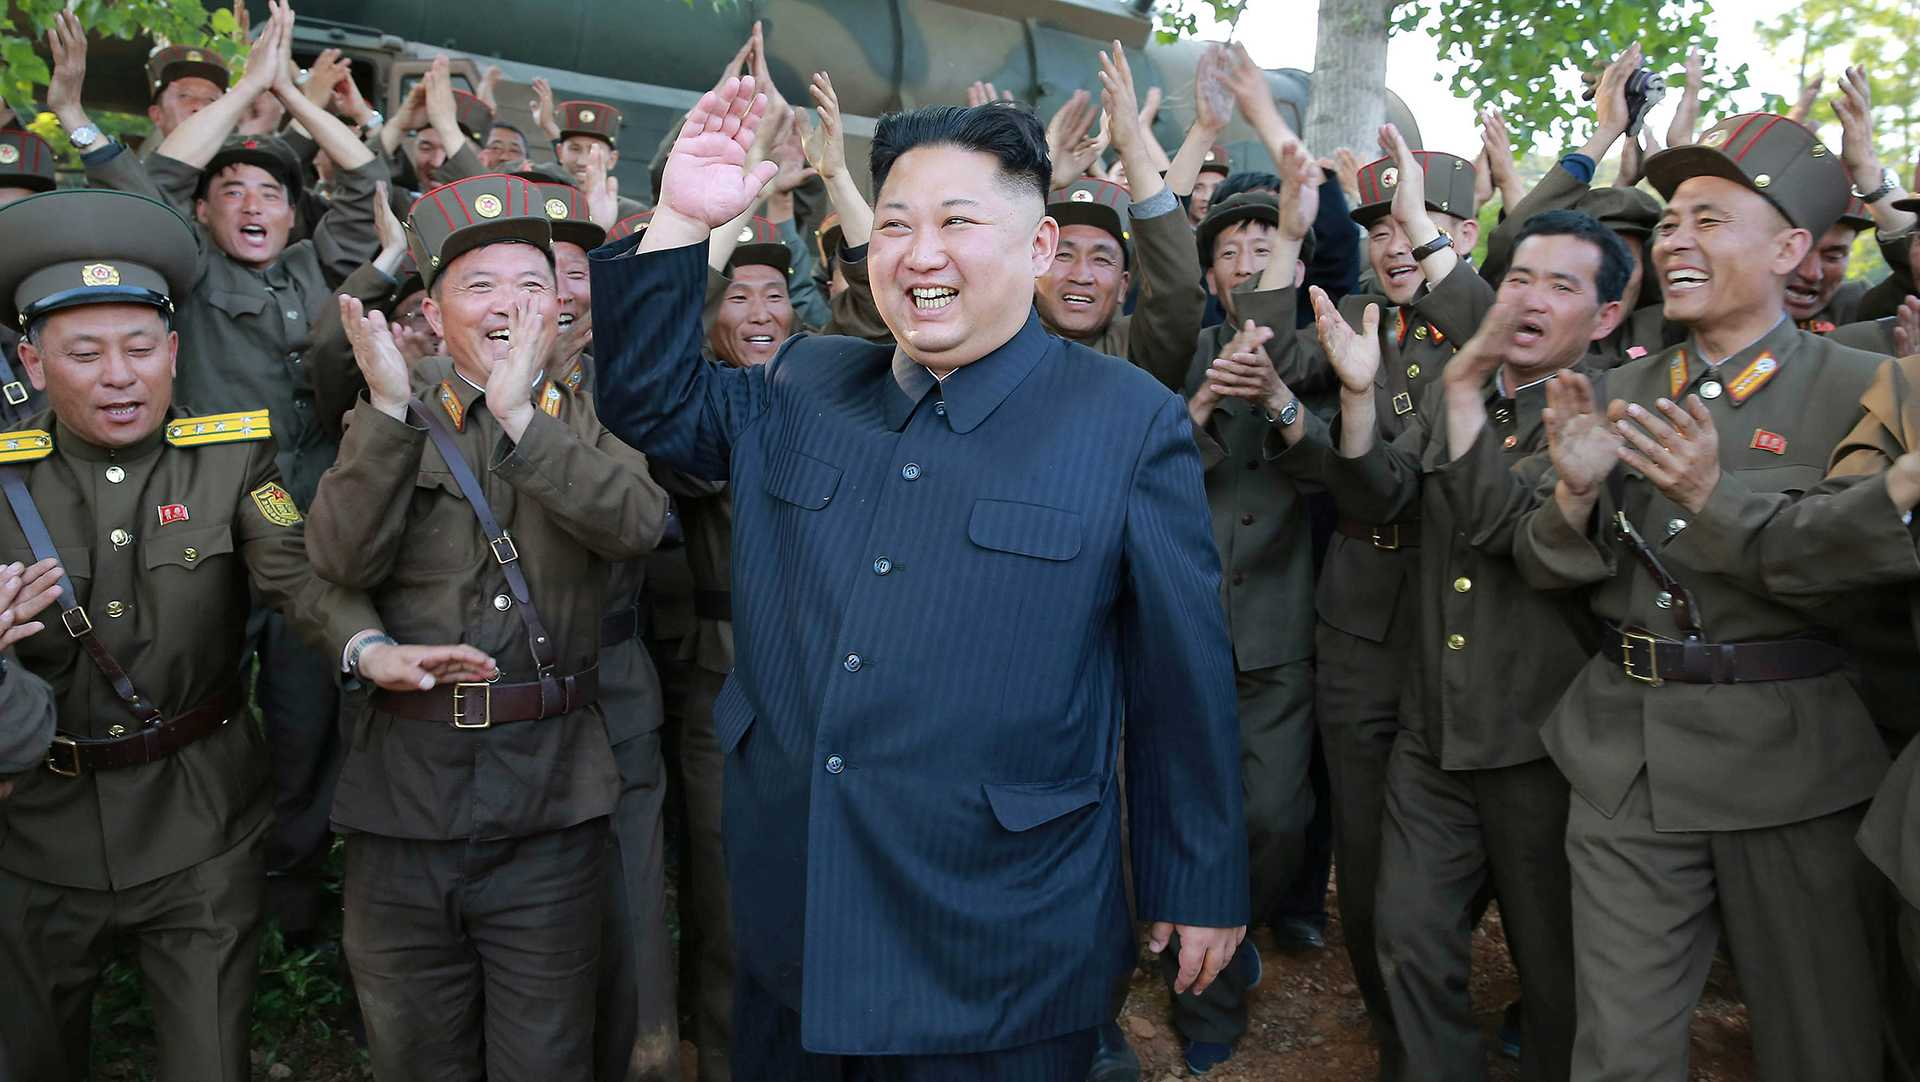 Undated photo from North Korean News Agency shows North Korean leader Kim Jong-un visiting a Korean People's Army unit, in an undisclosed location, North Korea. Photo released August 2017. (Balkis Press/Abaca Press/TNS)